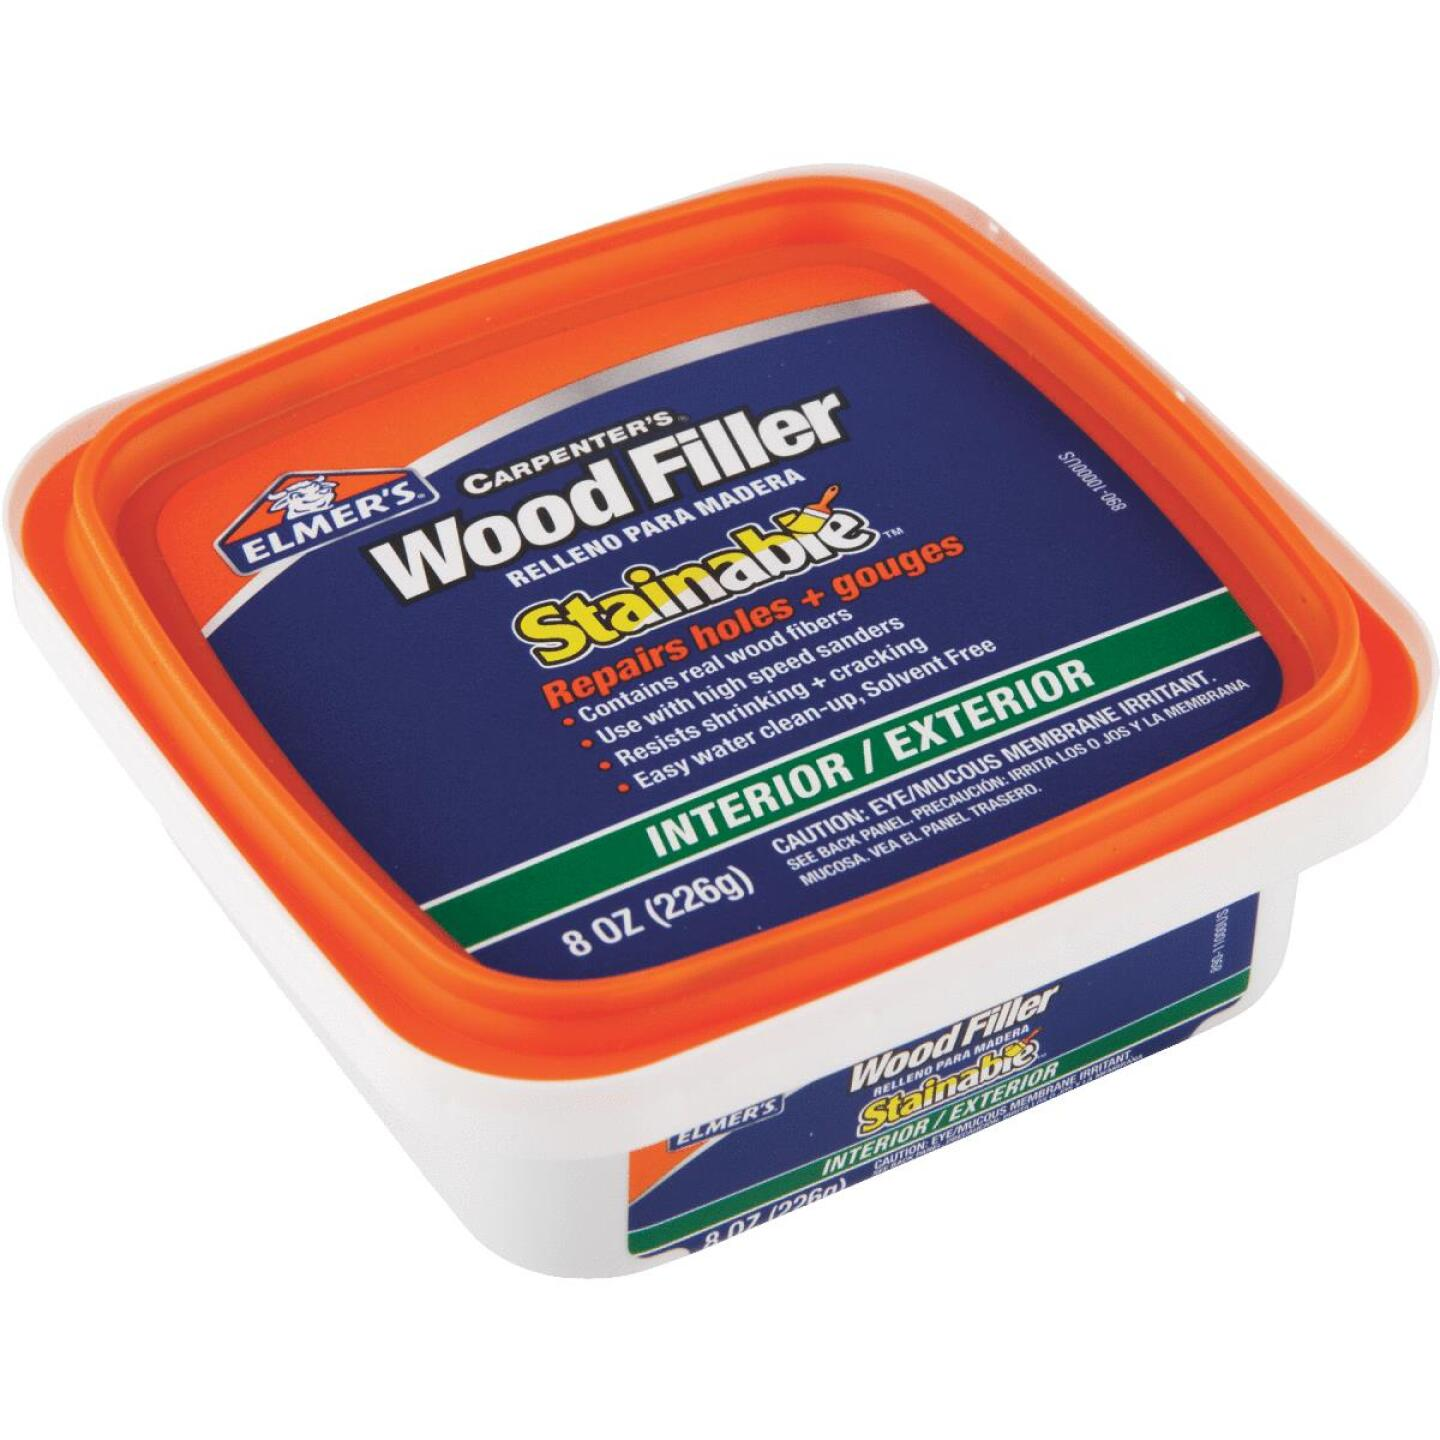 Elmer's Stainable Light Tan 8 Oz. Wood Filler Image 5